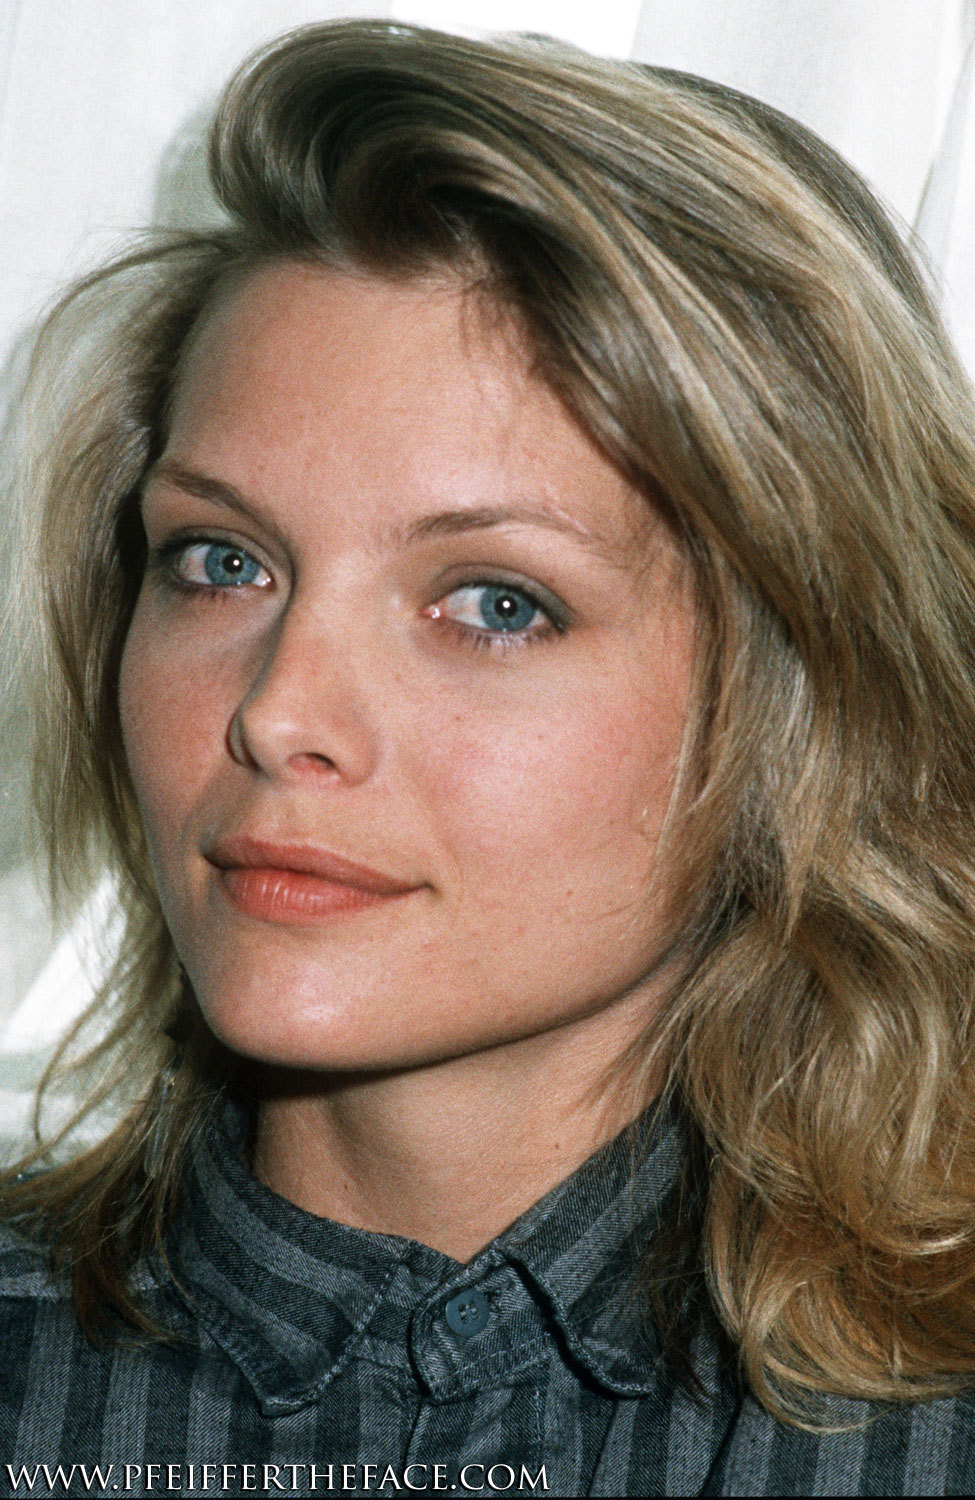 Michelle Pfeiffer - Wallpaper Colection